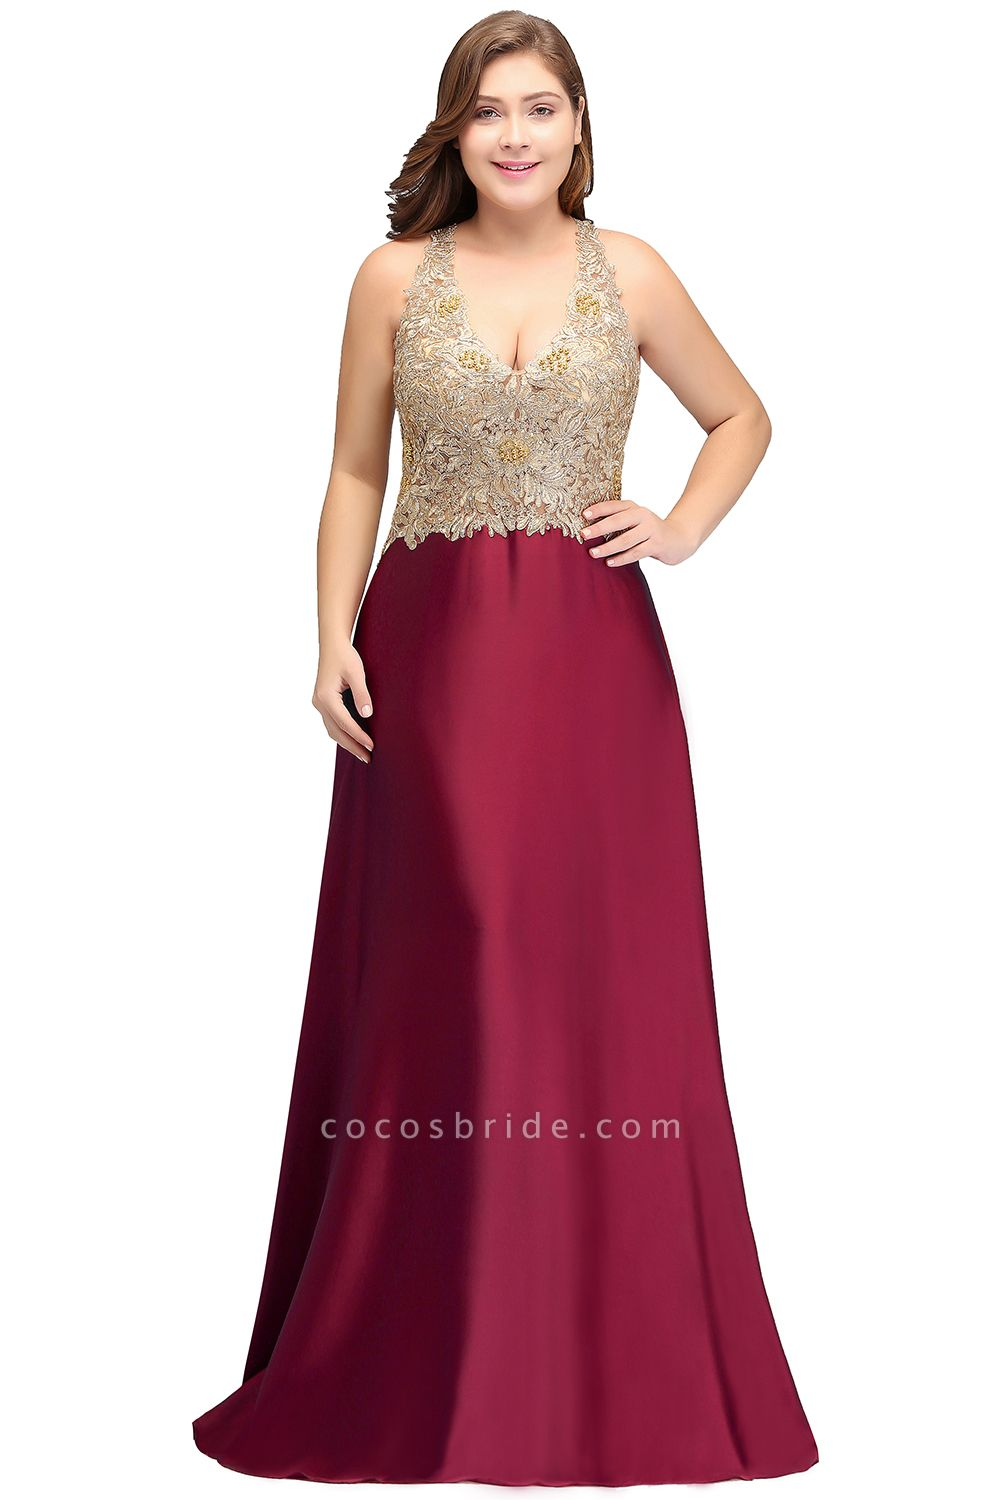 ISABELA | A-Line V-neck Plus size Long Sleeveless Evening Dresses with Appliques